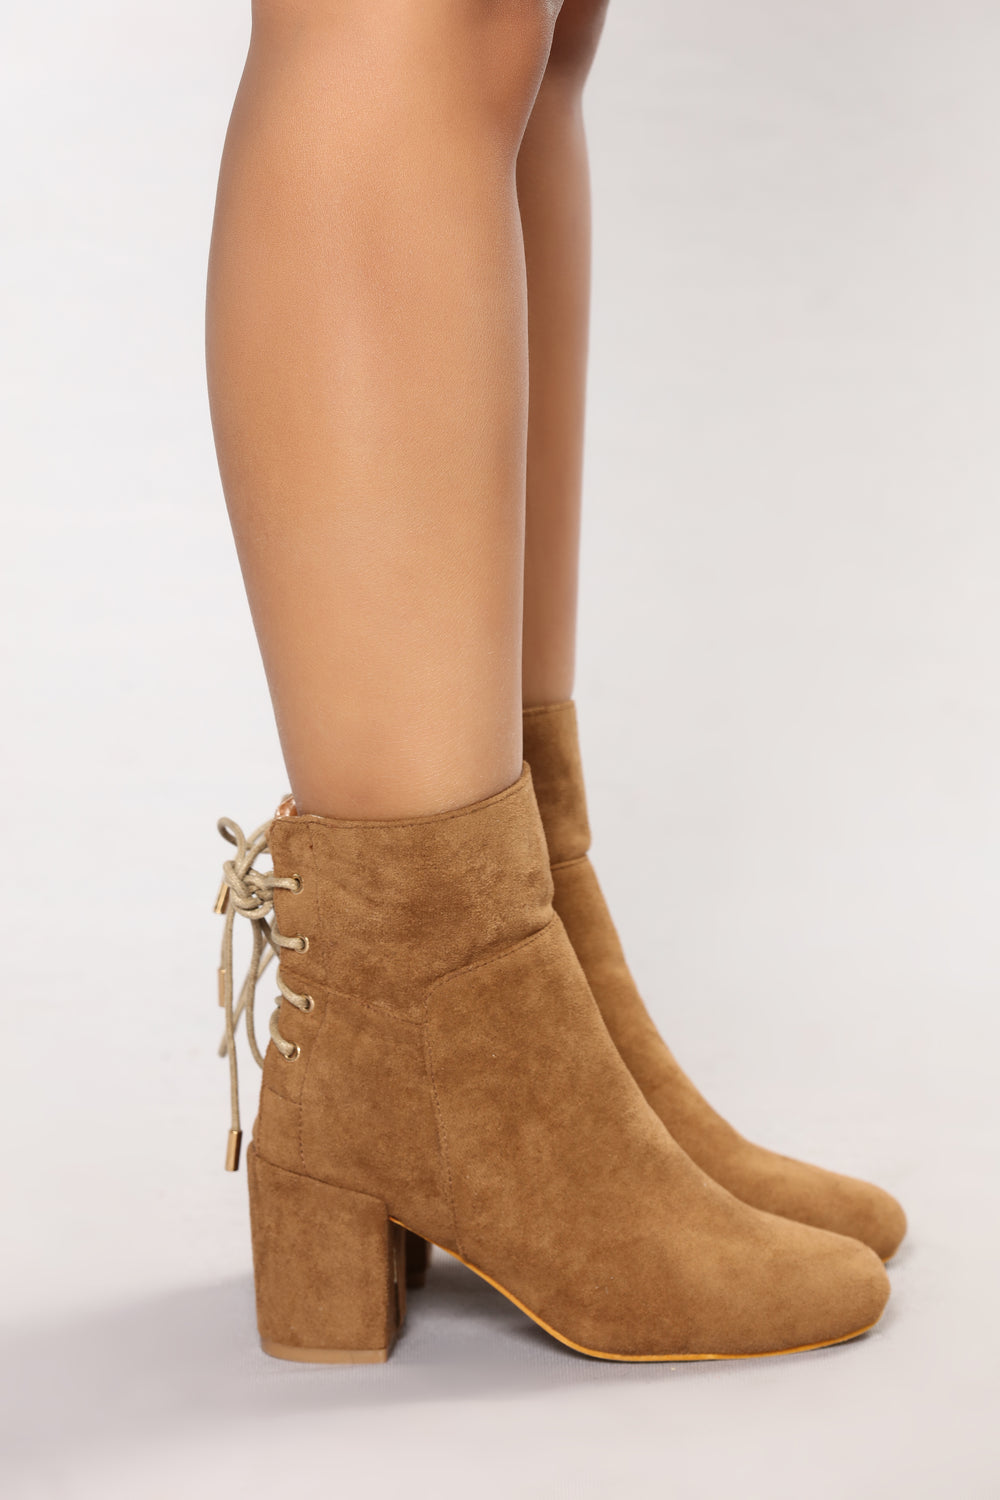 Eddy Lace Back Bootie - Taupe